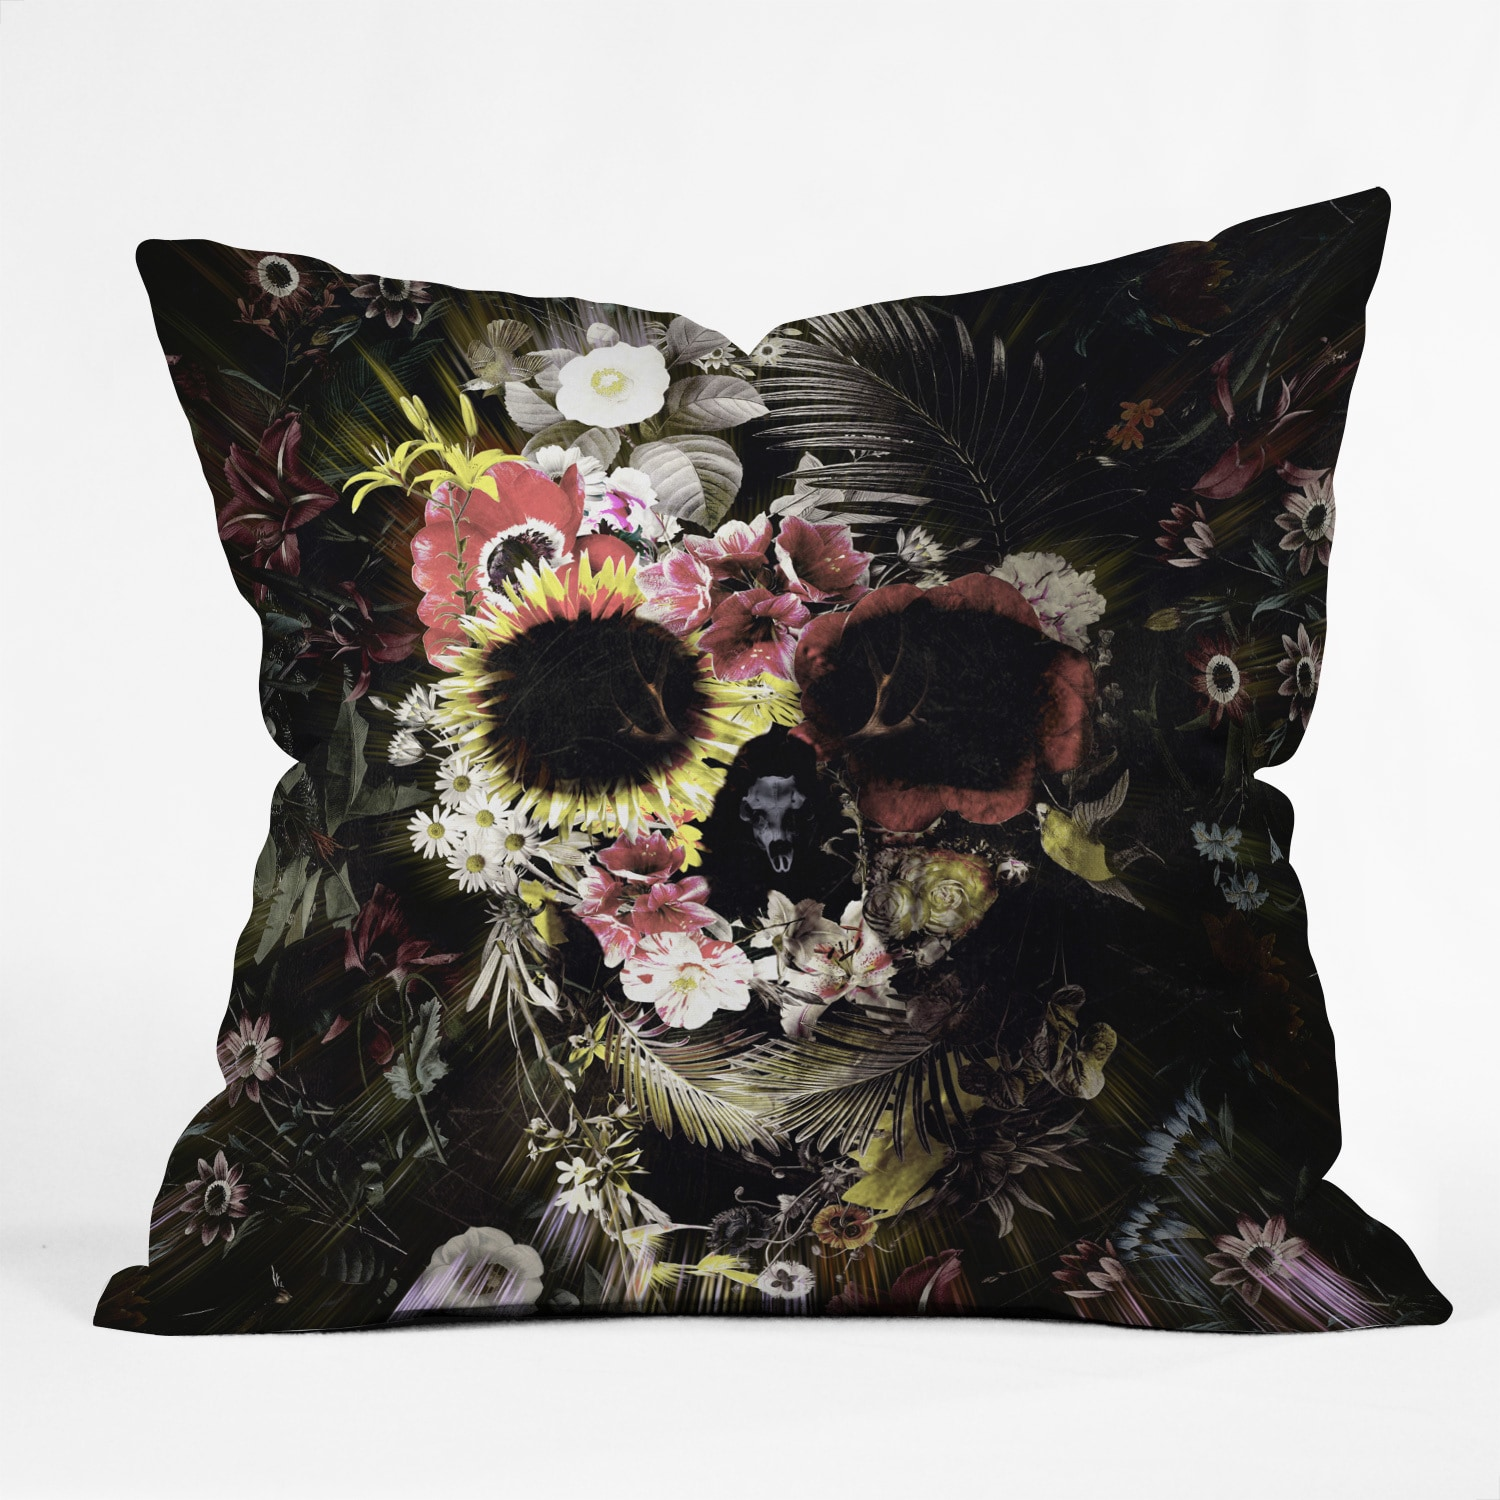 Ali Gulec Garden Skull Multicolor Polyester Throw Pillow (Oversized - 26 x 26)